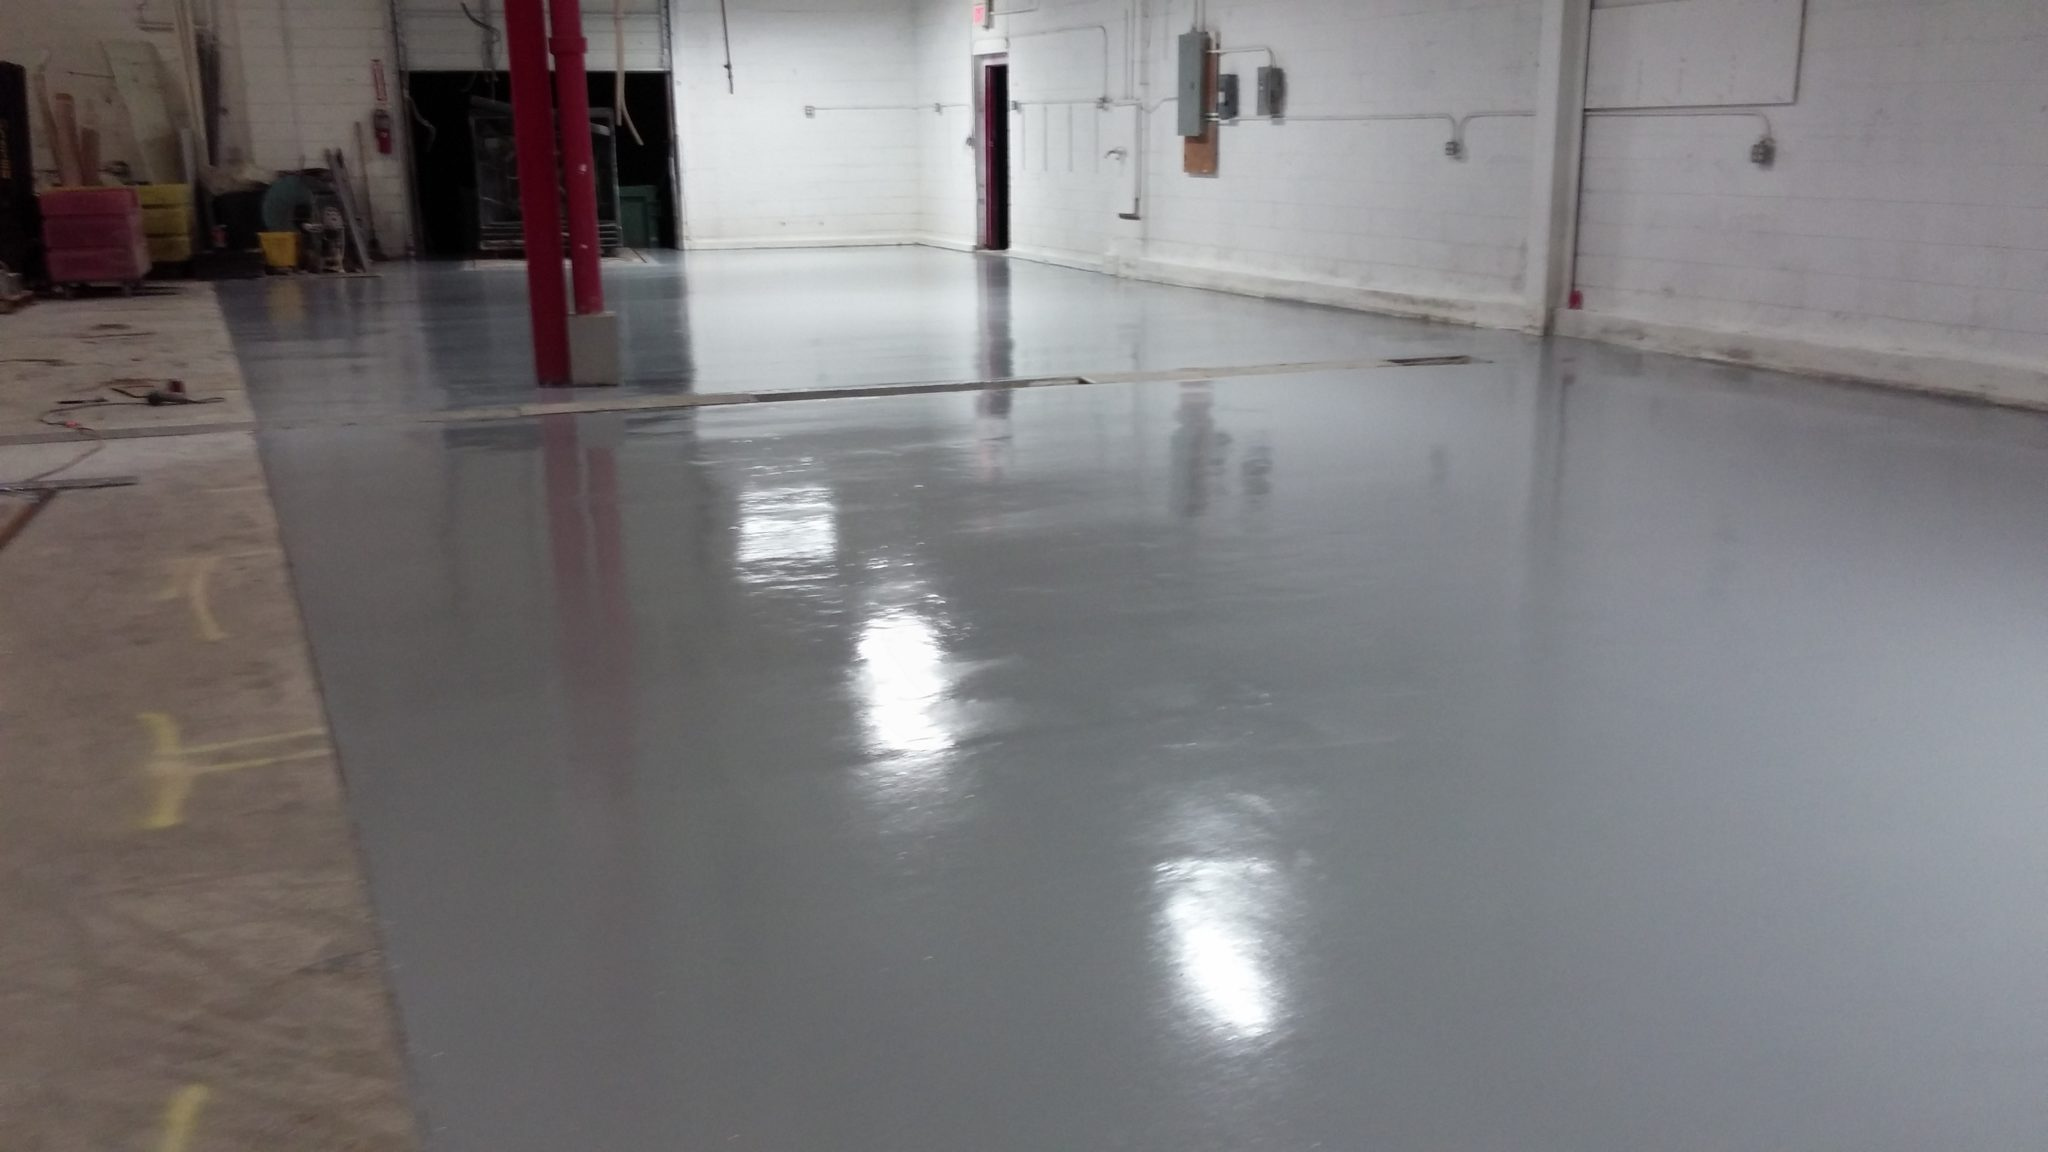 Garage Floor Tiles Or Paint Armorpoxy Epoxy Floor Kits Commercial Epoxy Coatings